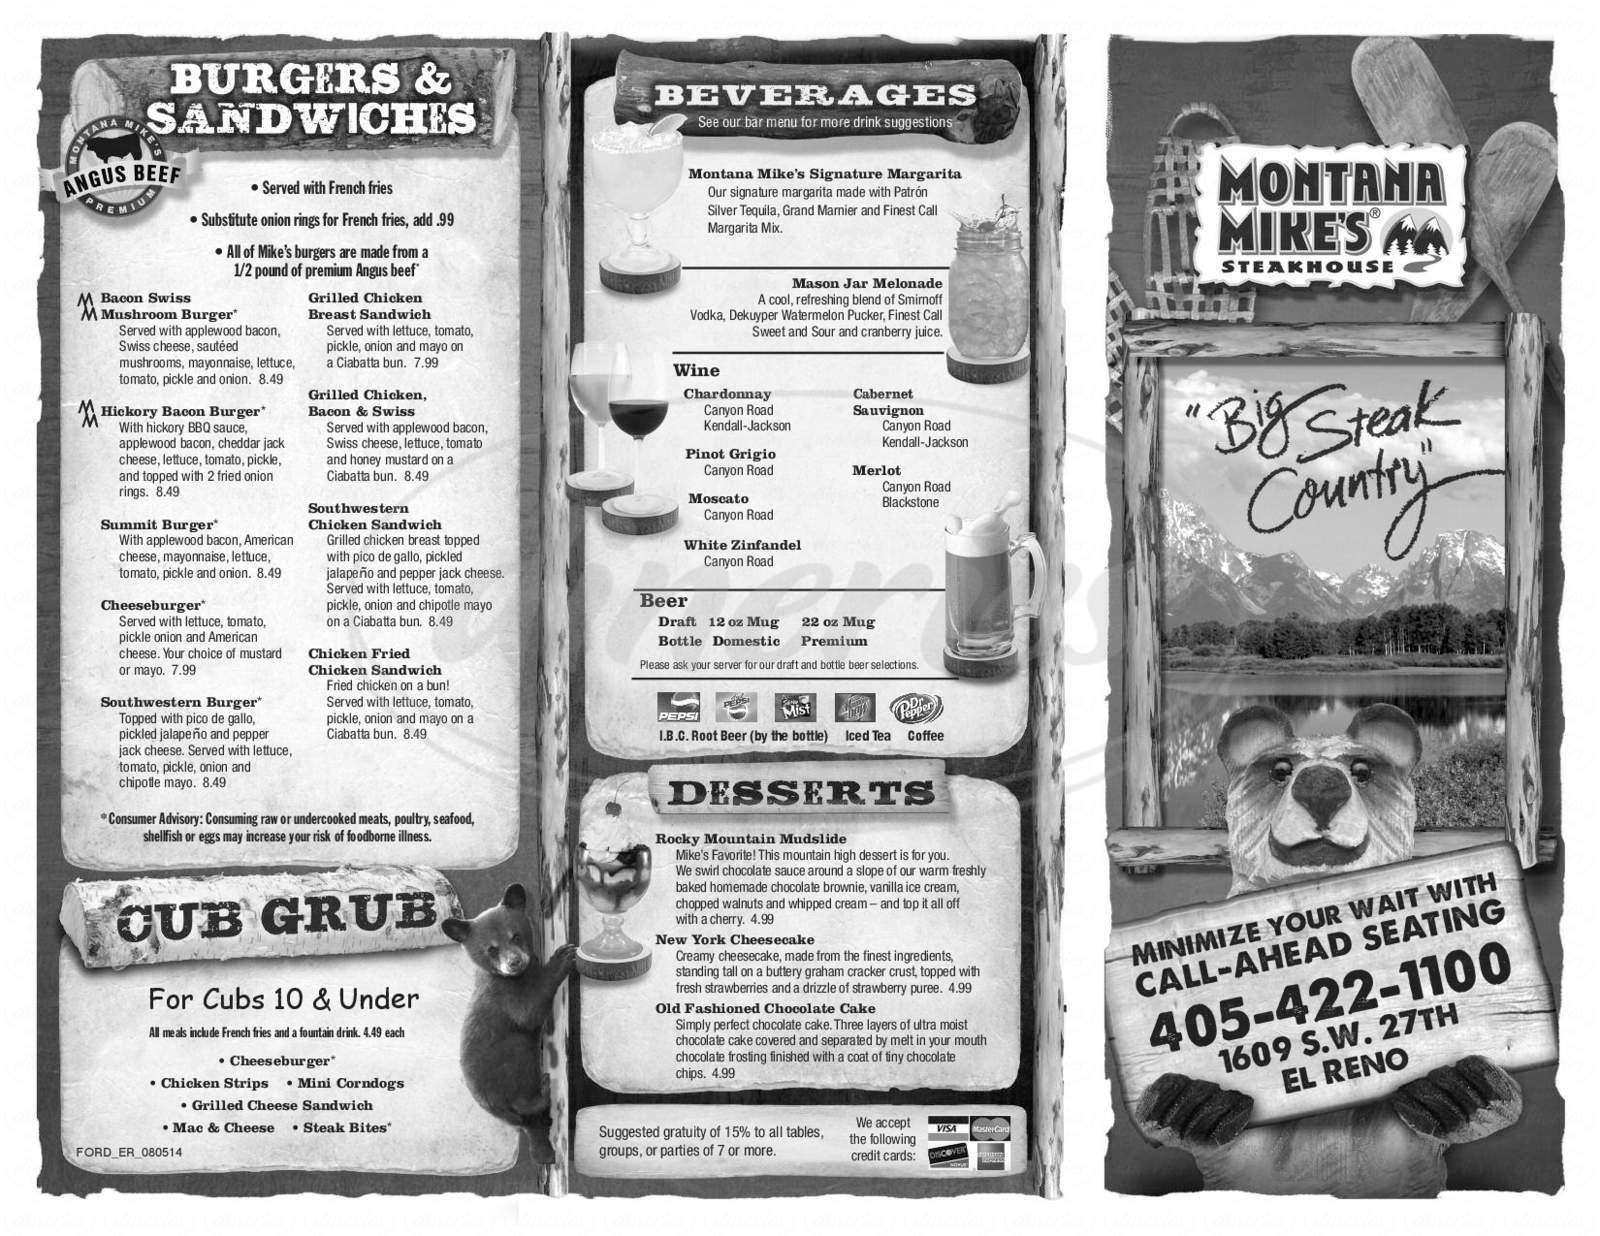 menu for Montana Mike's Steakhouse